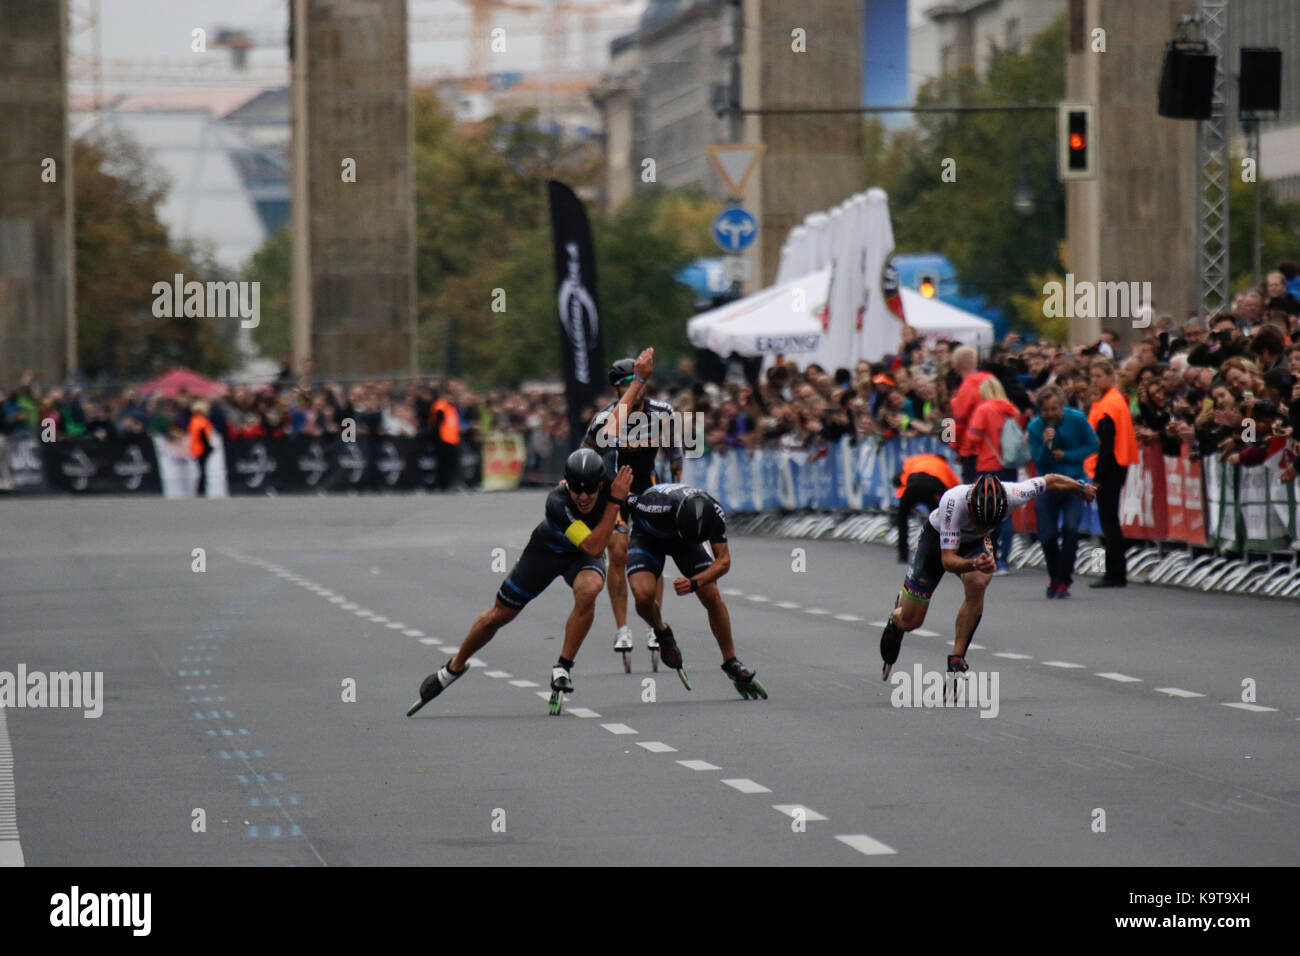 Berlin, Germany. 23rd Sep, 2017. Second place Patxi Peula from Spain crosses the finishing line.Skaters race the last meters of the course from the Brandenburg Gate to the finishing line. Over 5,500 skater took part in the 2017 BMW Berlin Marathon Inline skating race, a day ahead of the Marathon race. Bart Swings from Belgium won the race in 58:42 for the 5th year in a row. Credit: Michael Debets/Pacific Press/Alamy Live News Stock Photo